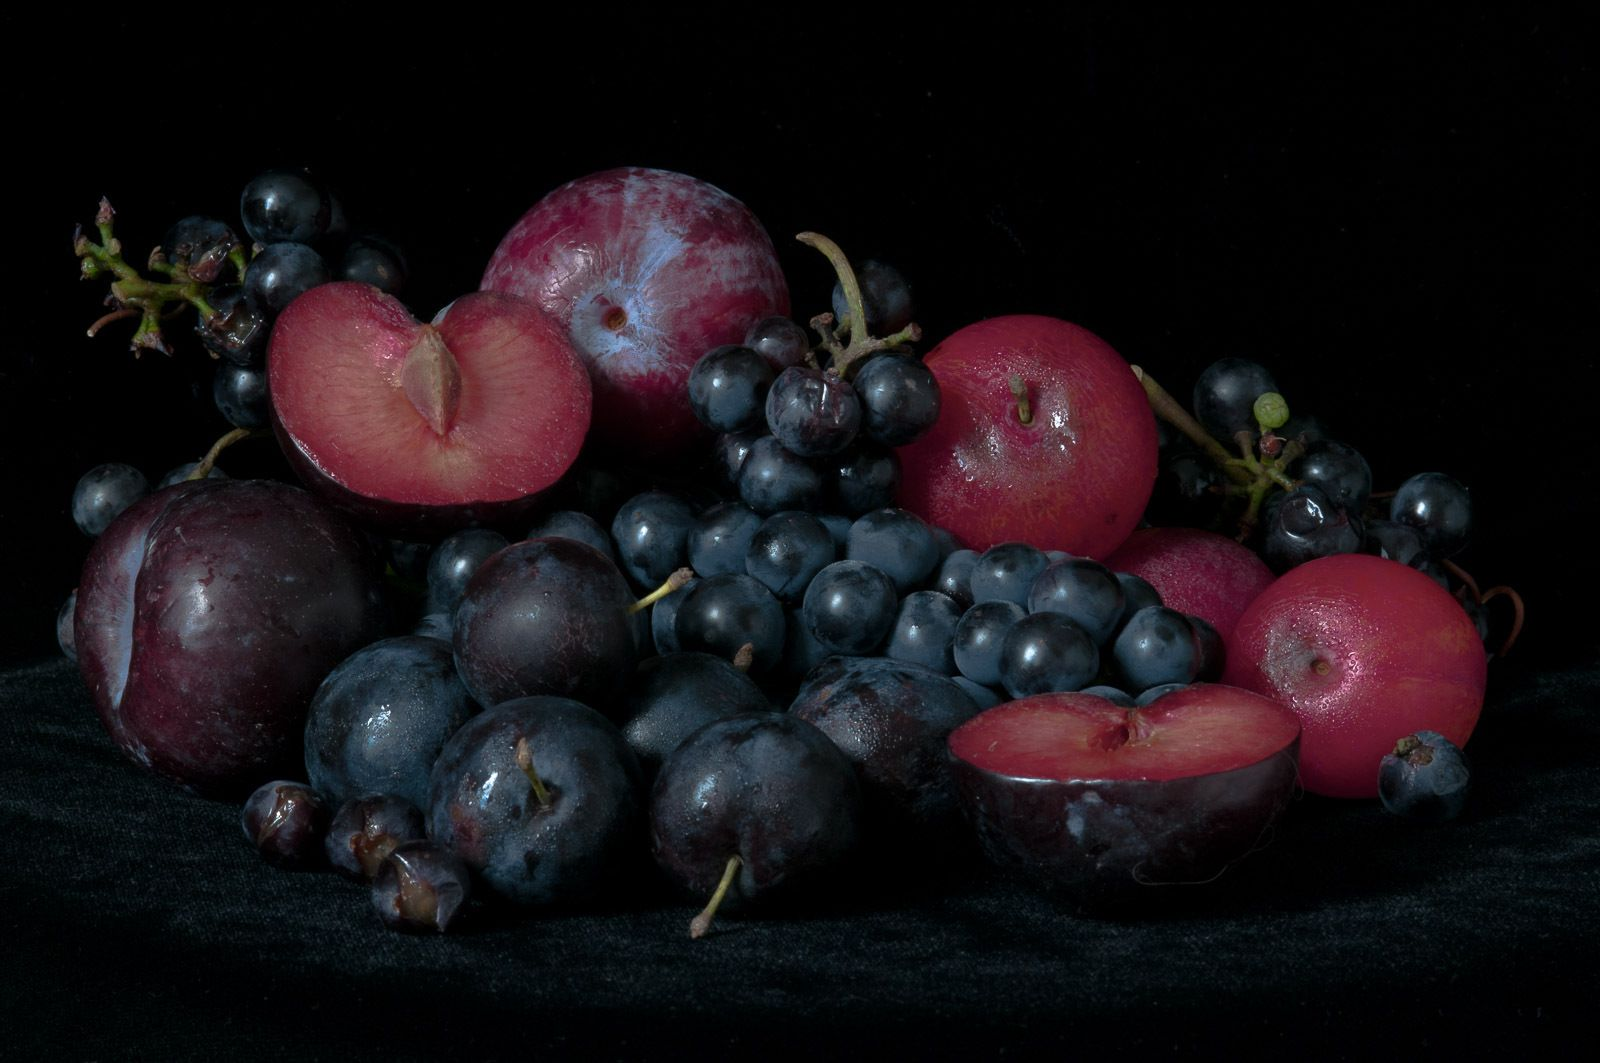 1karlin_still_life_with_plums___grapes_103_edit.jpg